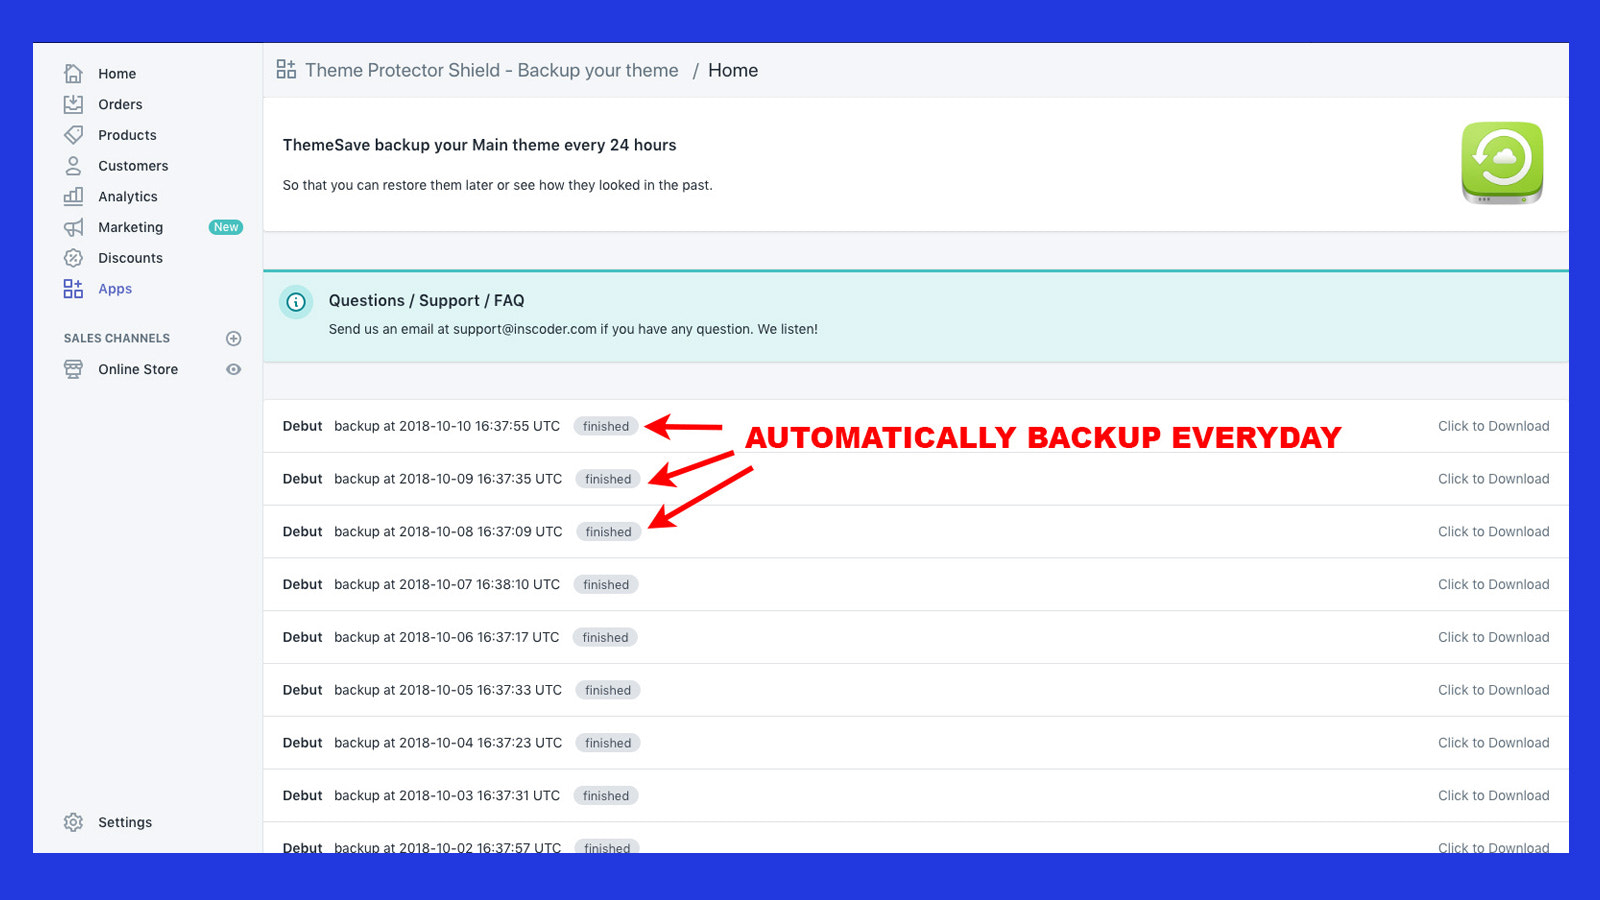 Shopify backup - One click to download the backup